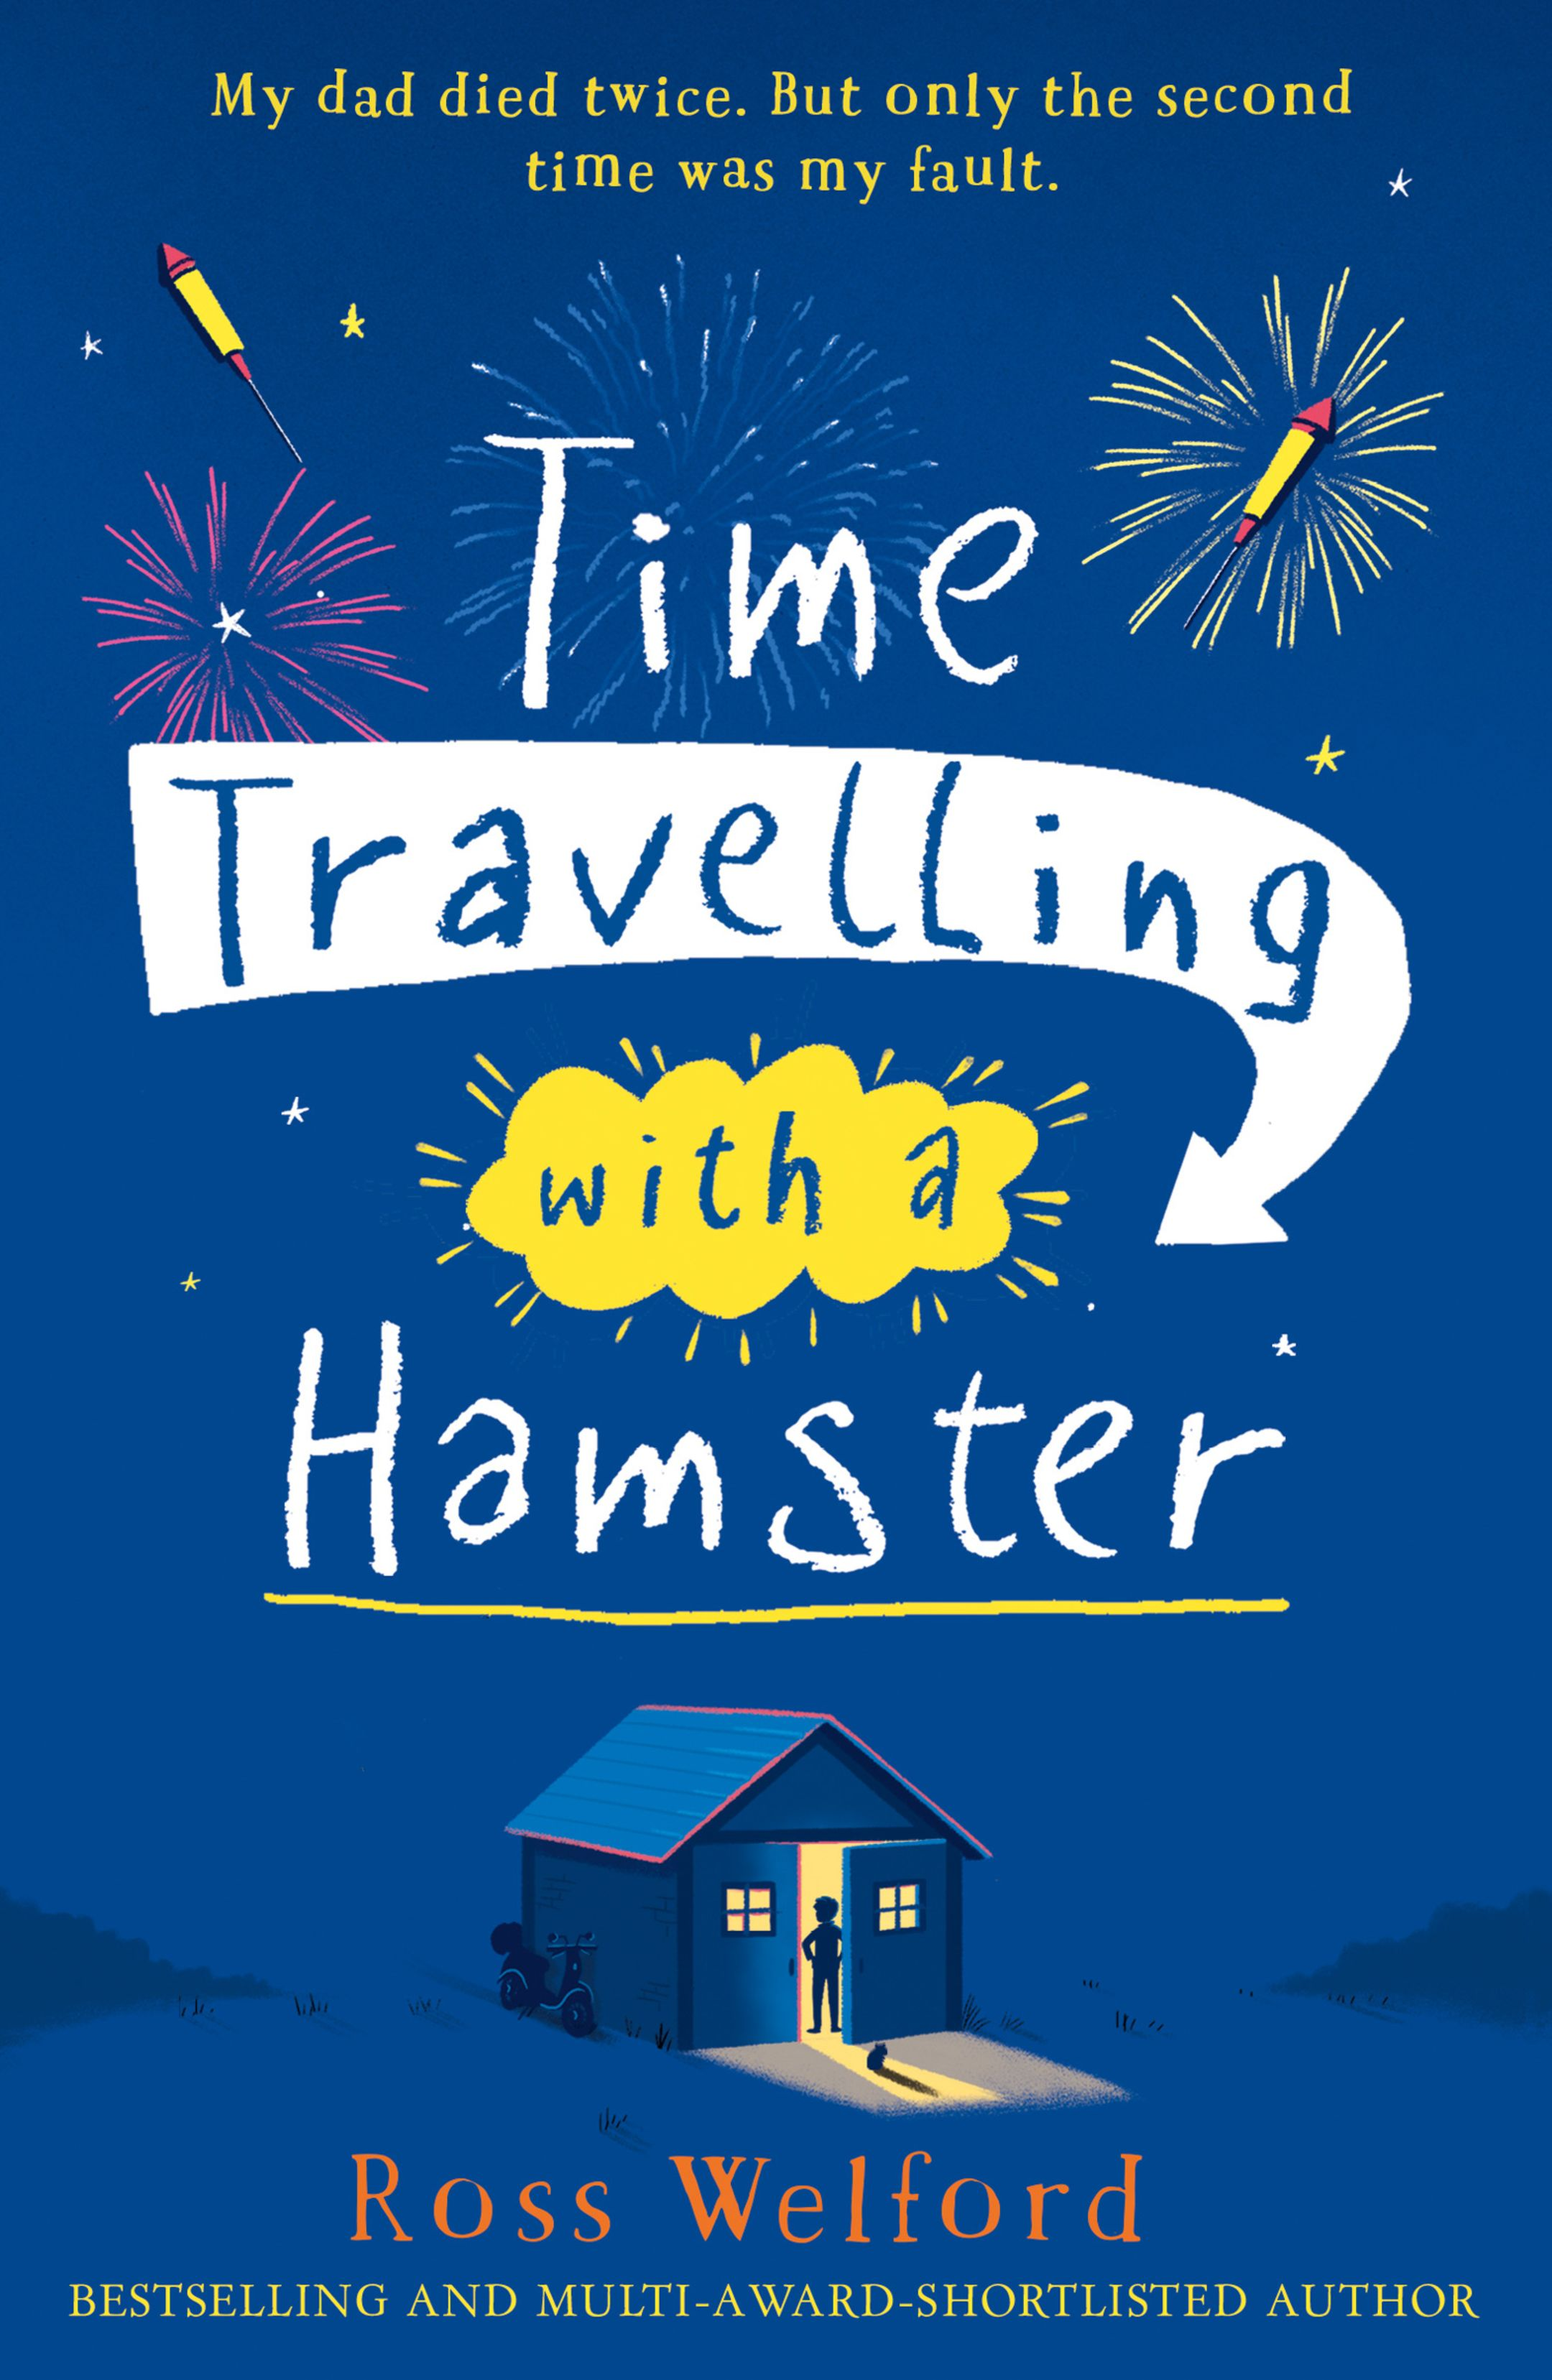 The cover of Time Travelling with a Hamster, by Ross Welford